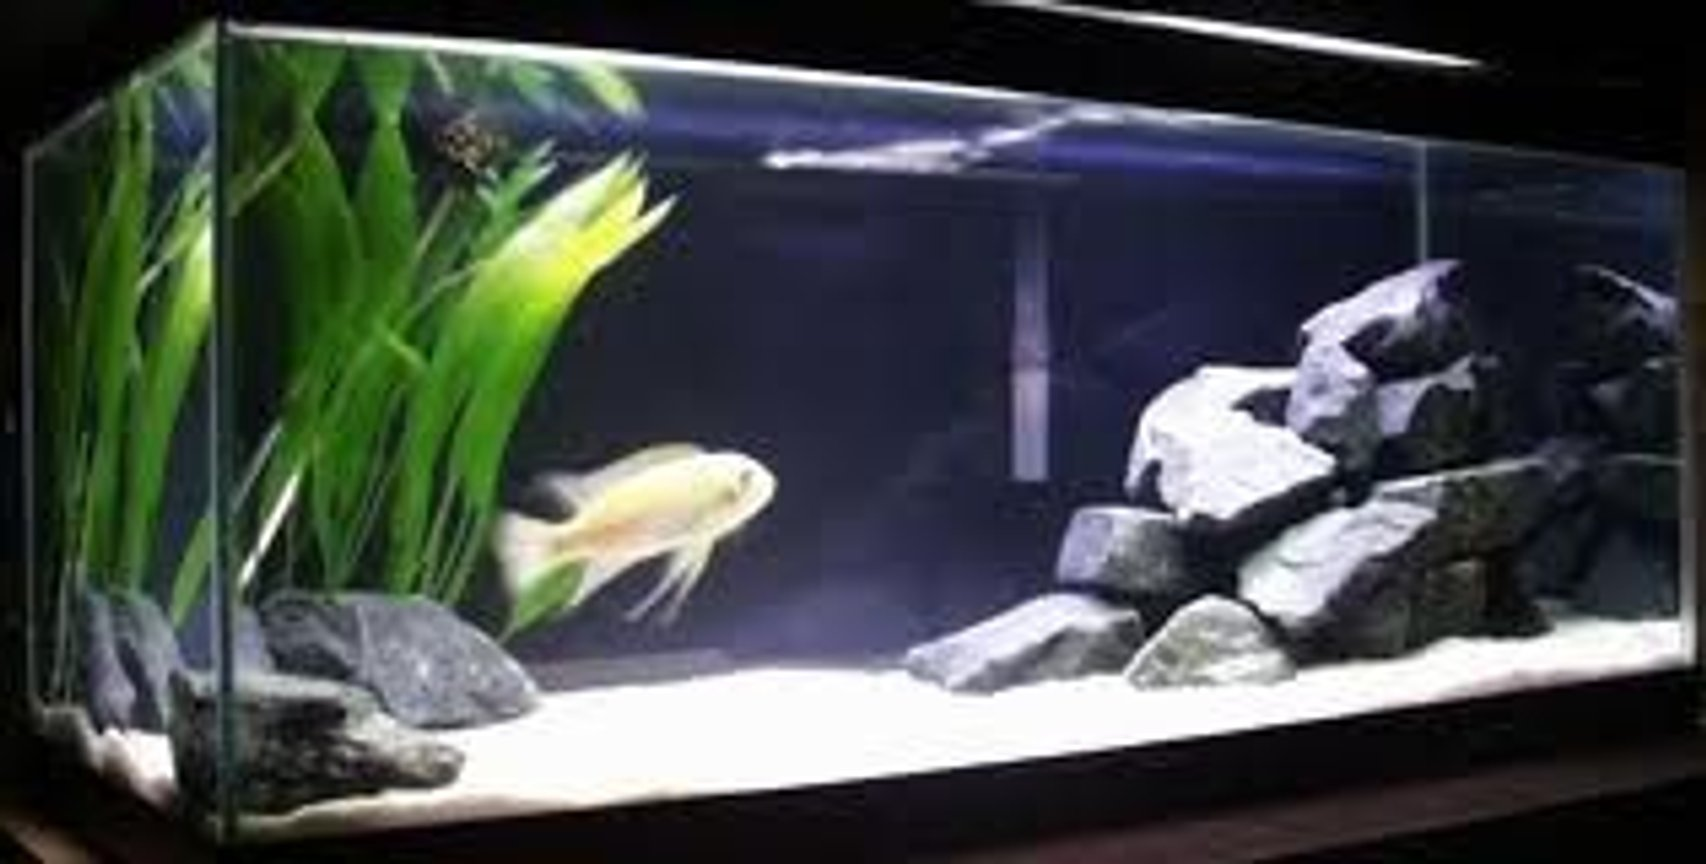 20 gallons freshwater fish tank (mostly fish and non-living decorations) - this is one of my son tank